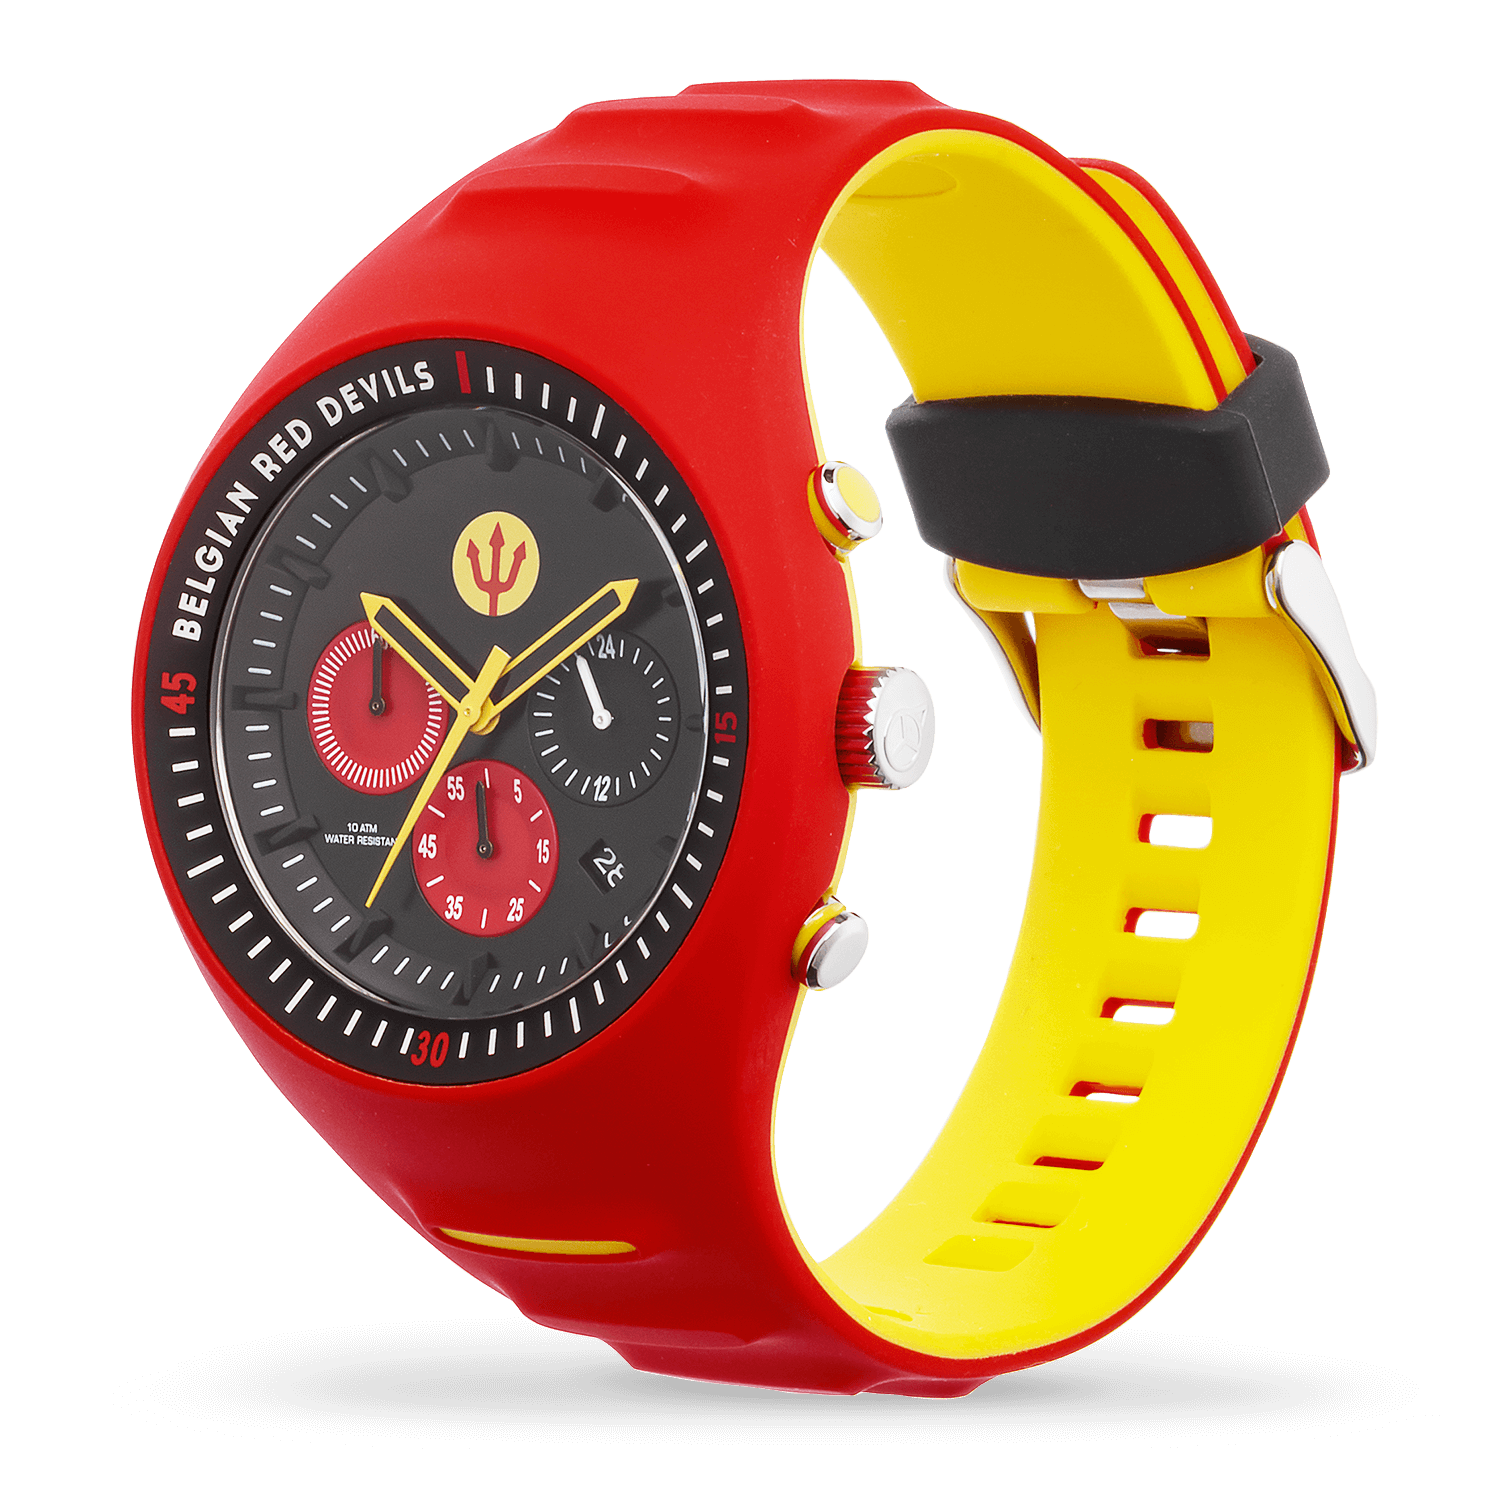 Ice Watch Red Devils - P. Leclercq - Red